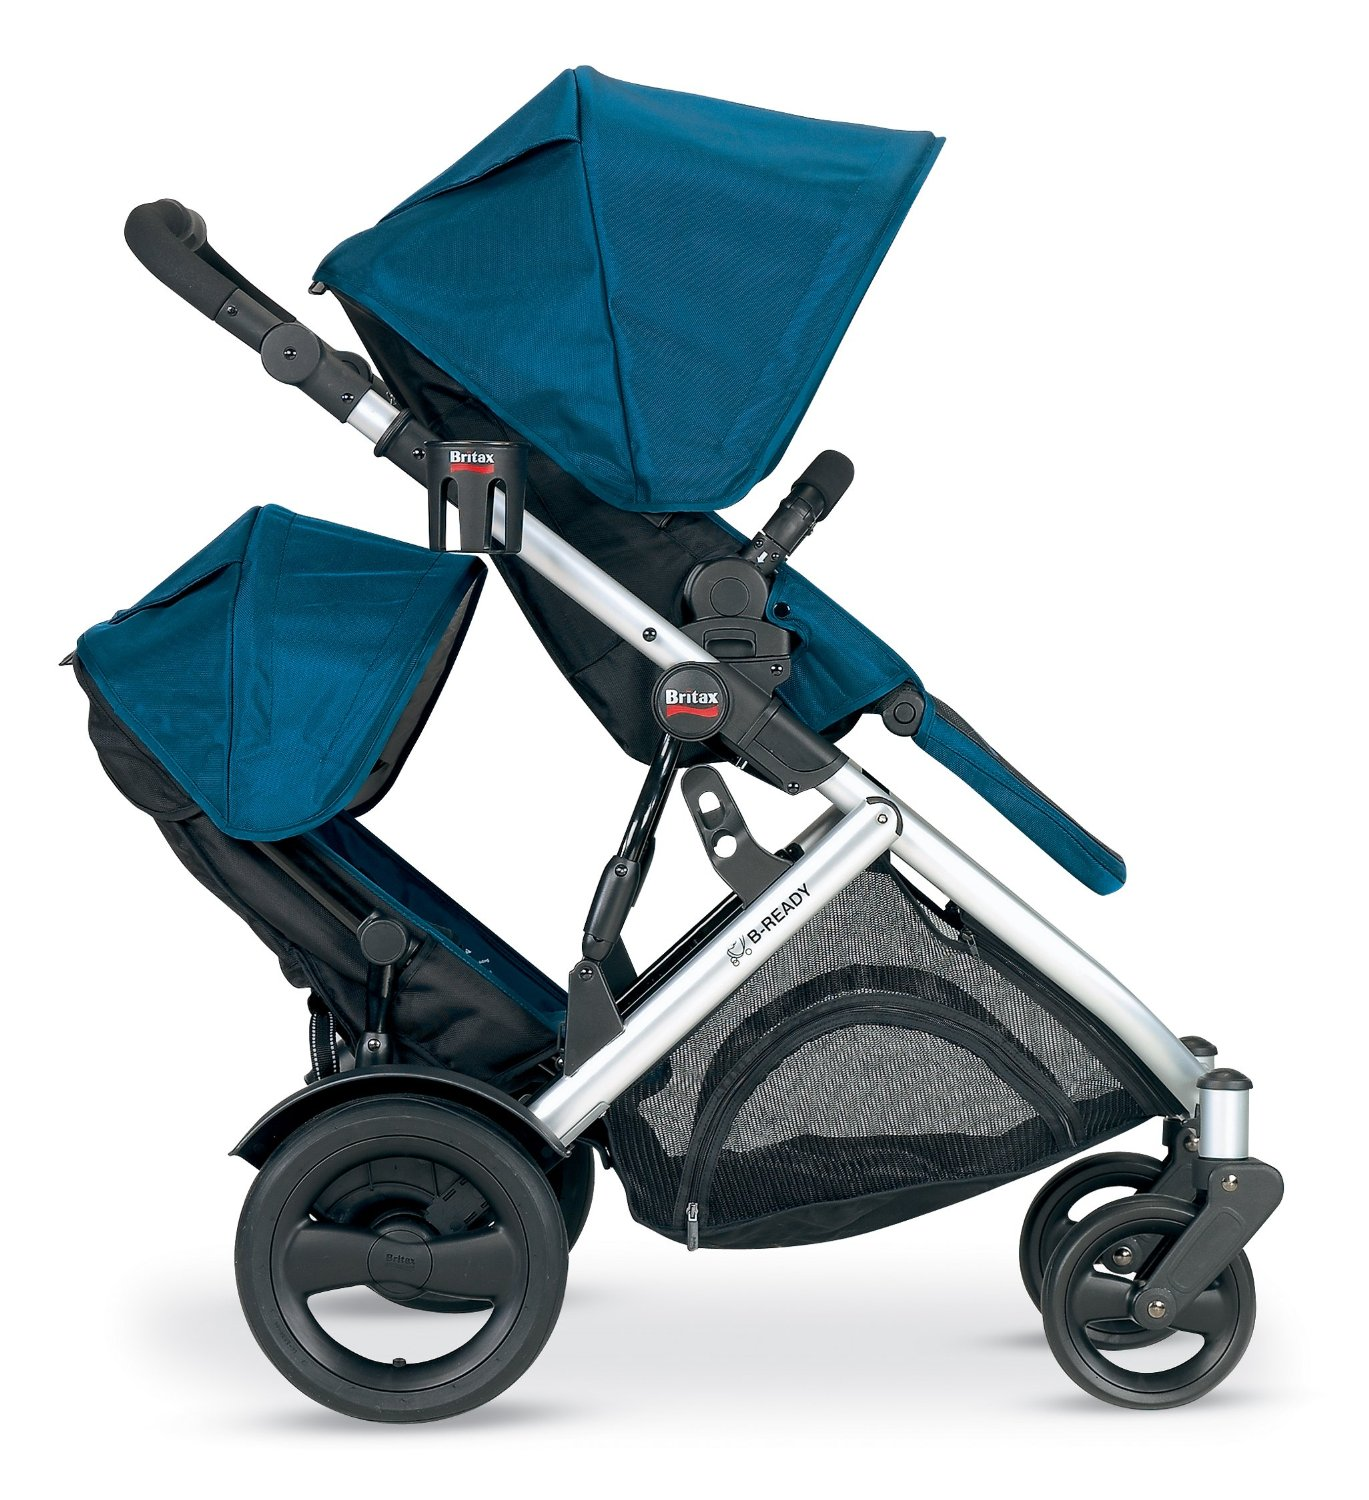 daily baby finds reviews best strollers 2016 best car seats double strollers britax. Black Bedroom Furniture Sets. Home Design Ideas